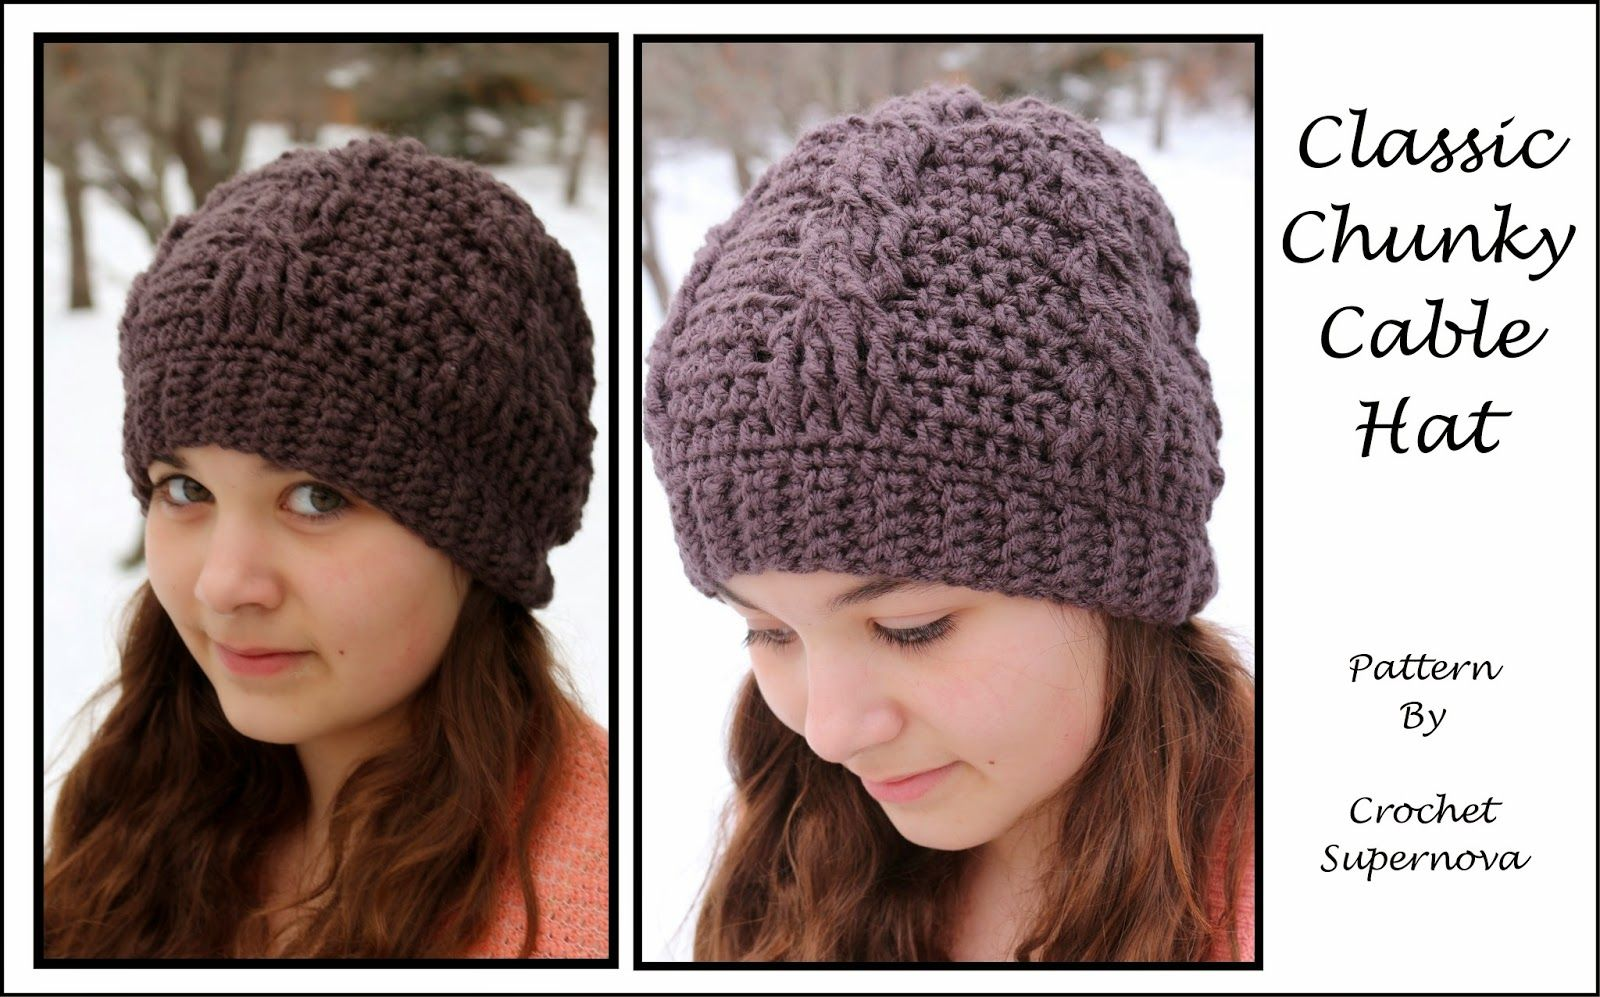 Crochet Supernova: Classic Chunky Cable Hat ~Free Pattern~ uses ...